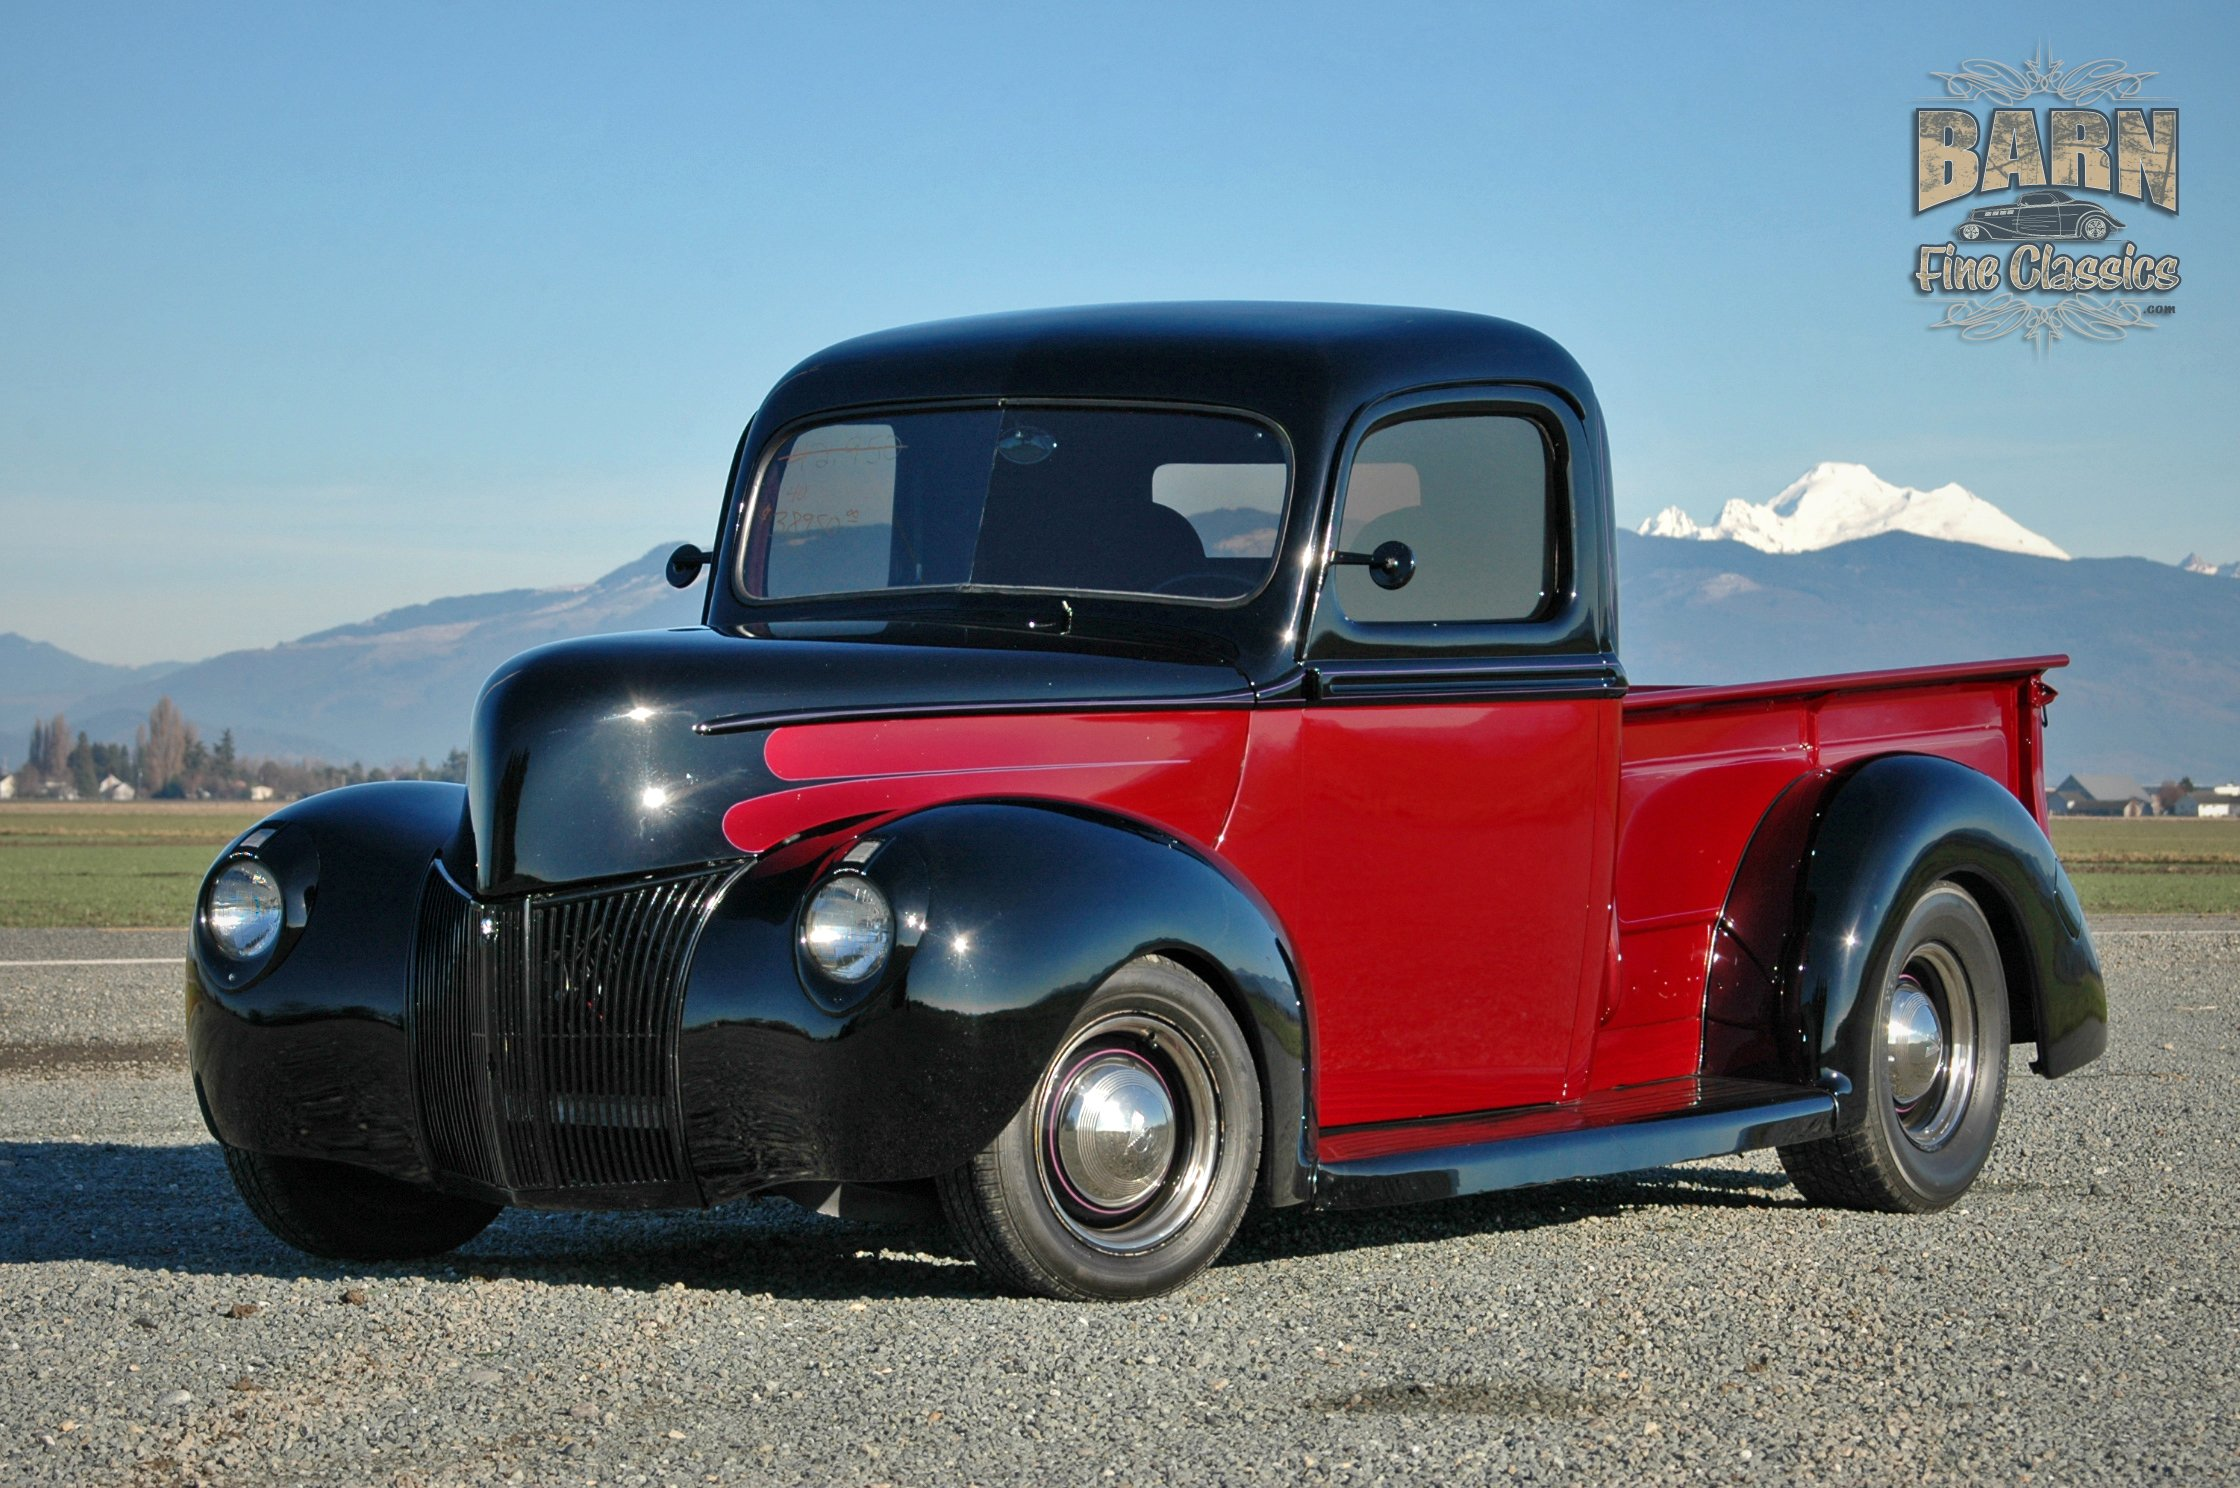 1940 ford deluxe pickup hot rod rods hotrod custom usa 2048x1488 02 wallpaper 2240x1488 624980 wallpaperup